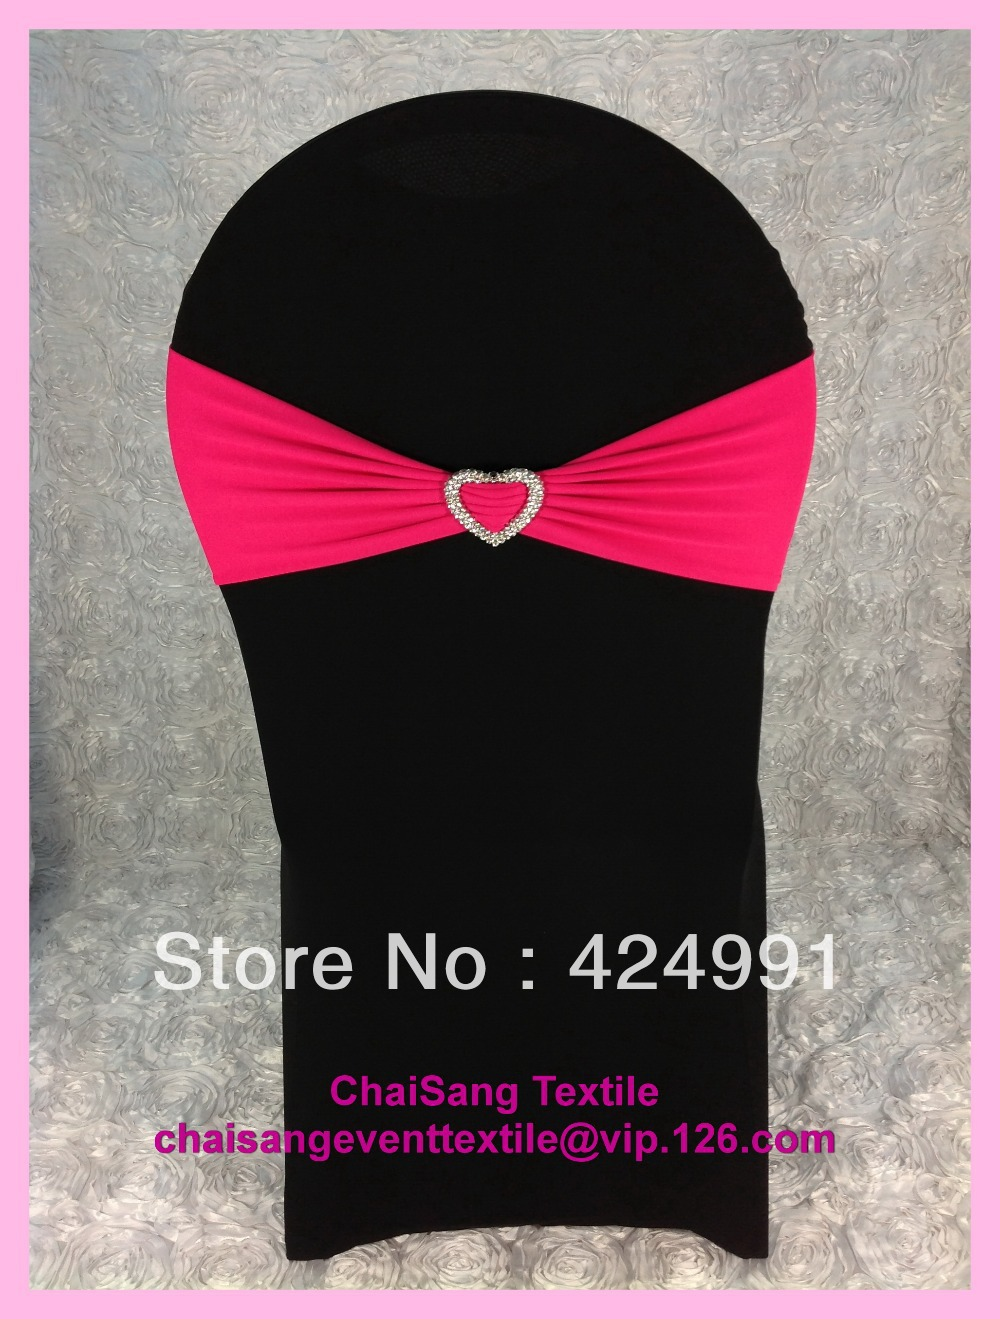 100pcs #21 Fuchsia Pink Lycra Chair Bands&Sash with Heart Shape buckle ,Double Layer Lycra Bands for Weddings Events Decoration(China (Mainland))